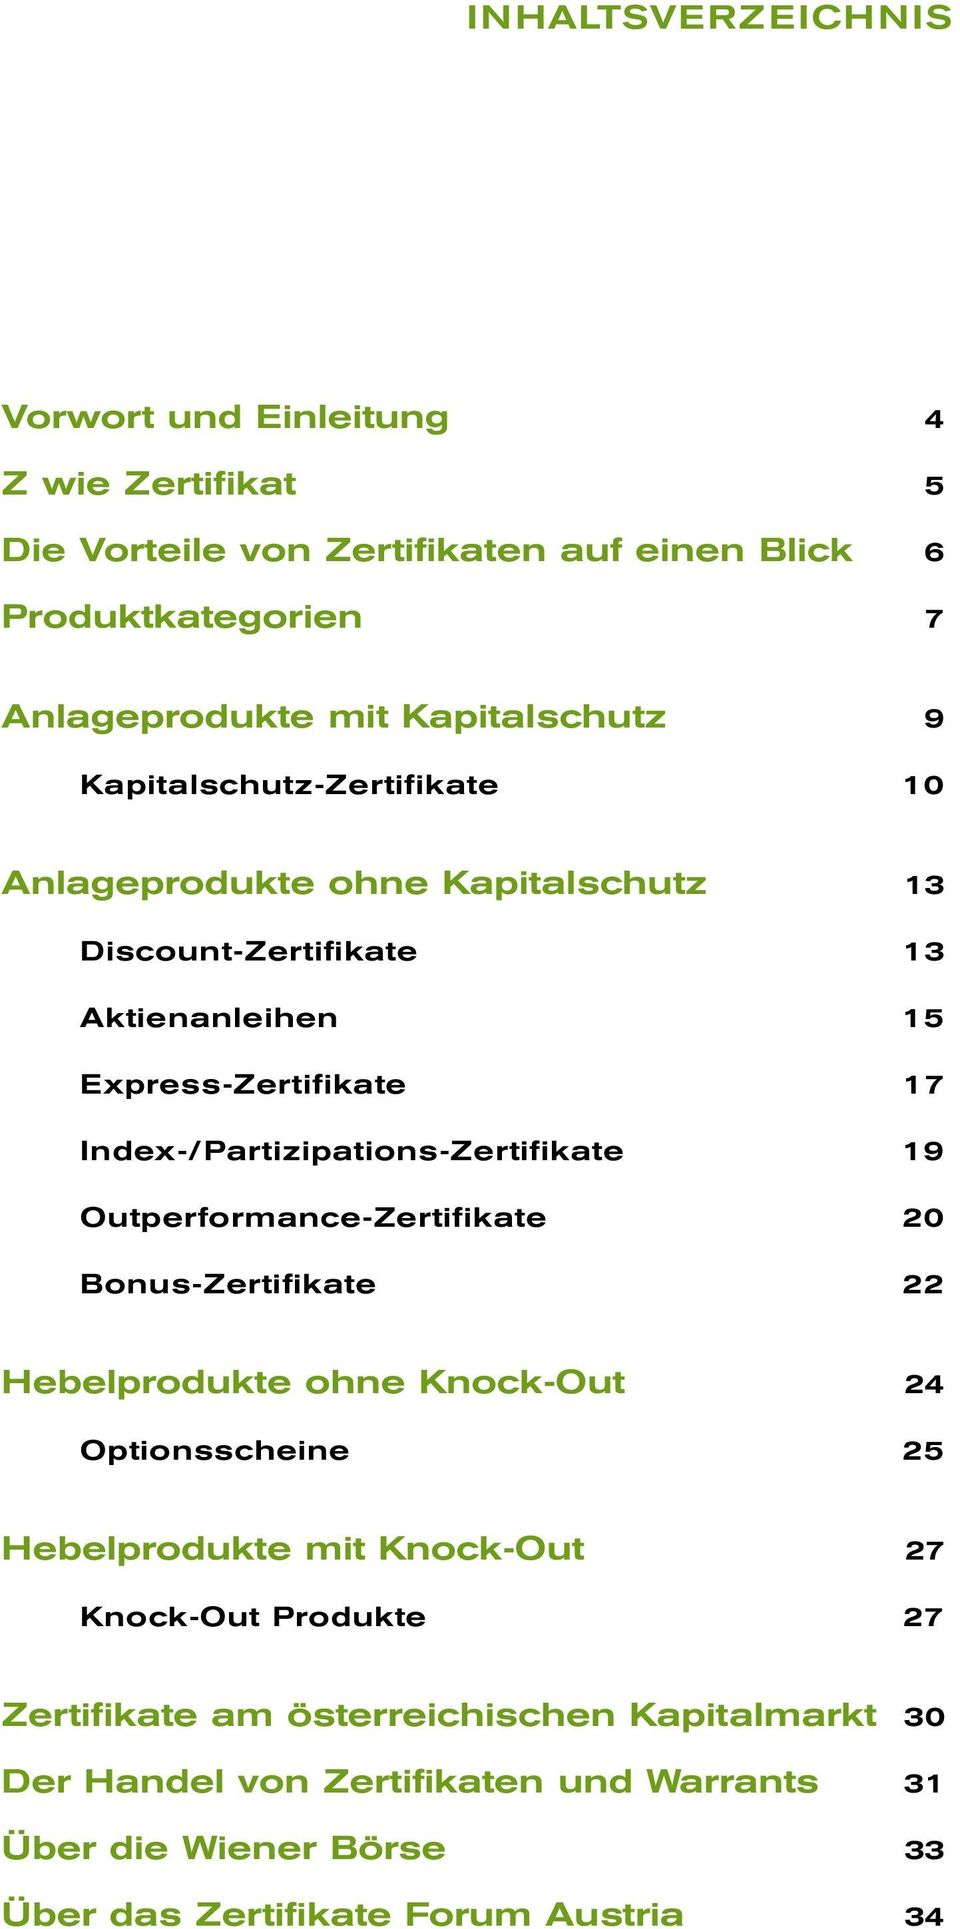 Index-/Partizipations-Zertifikate 19 Outperformance-Zertifikate 20 Bonus-Zertifikate 22 Hebelprodukte ohne Knock-Out 24 Optionsscheine 25 Hebelprodukte mit